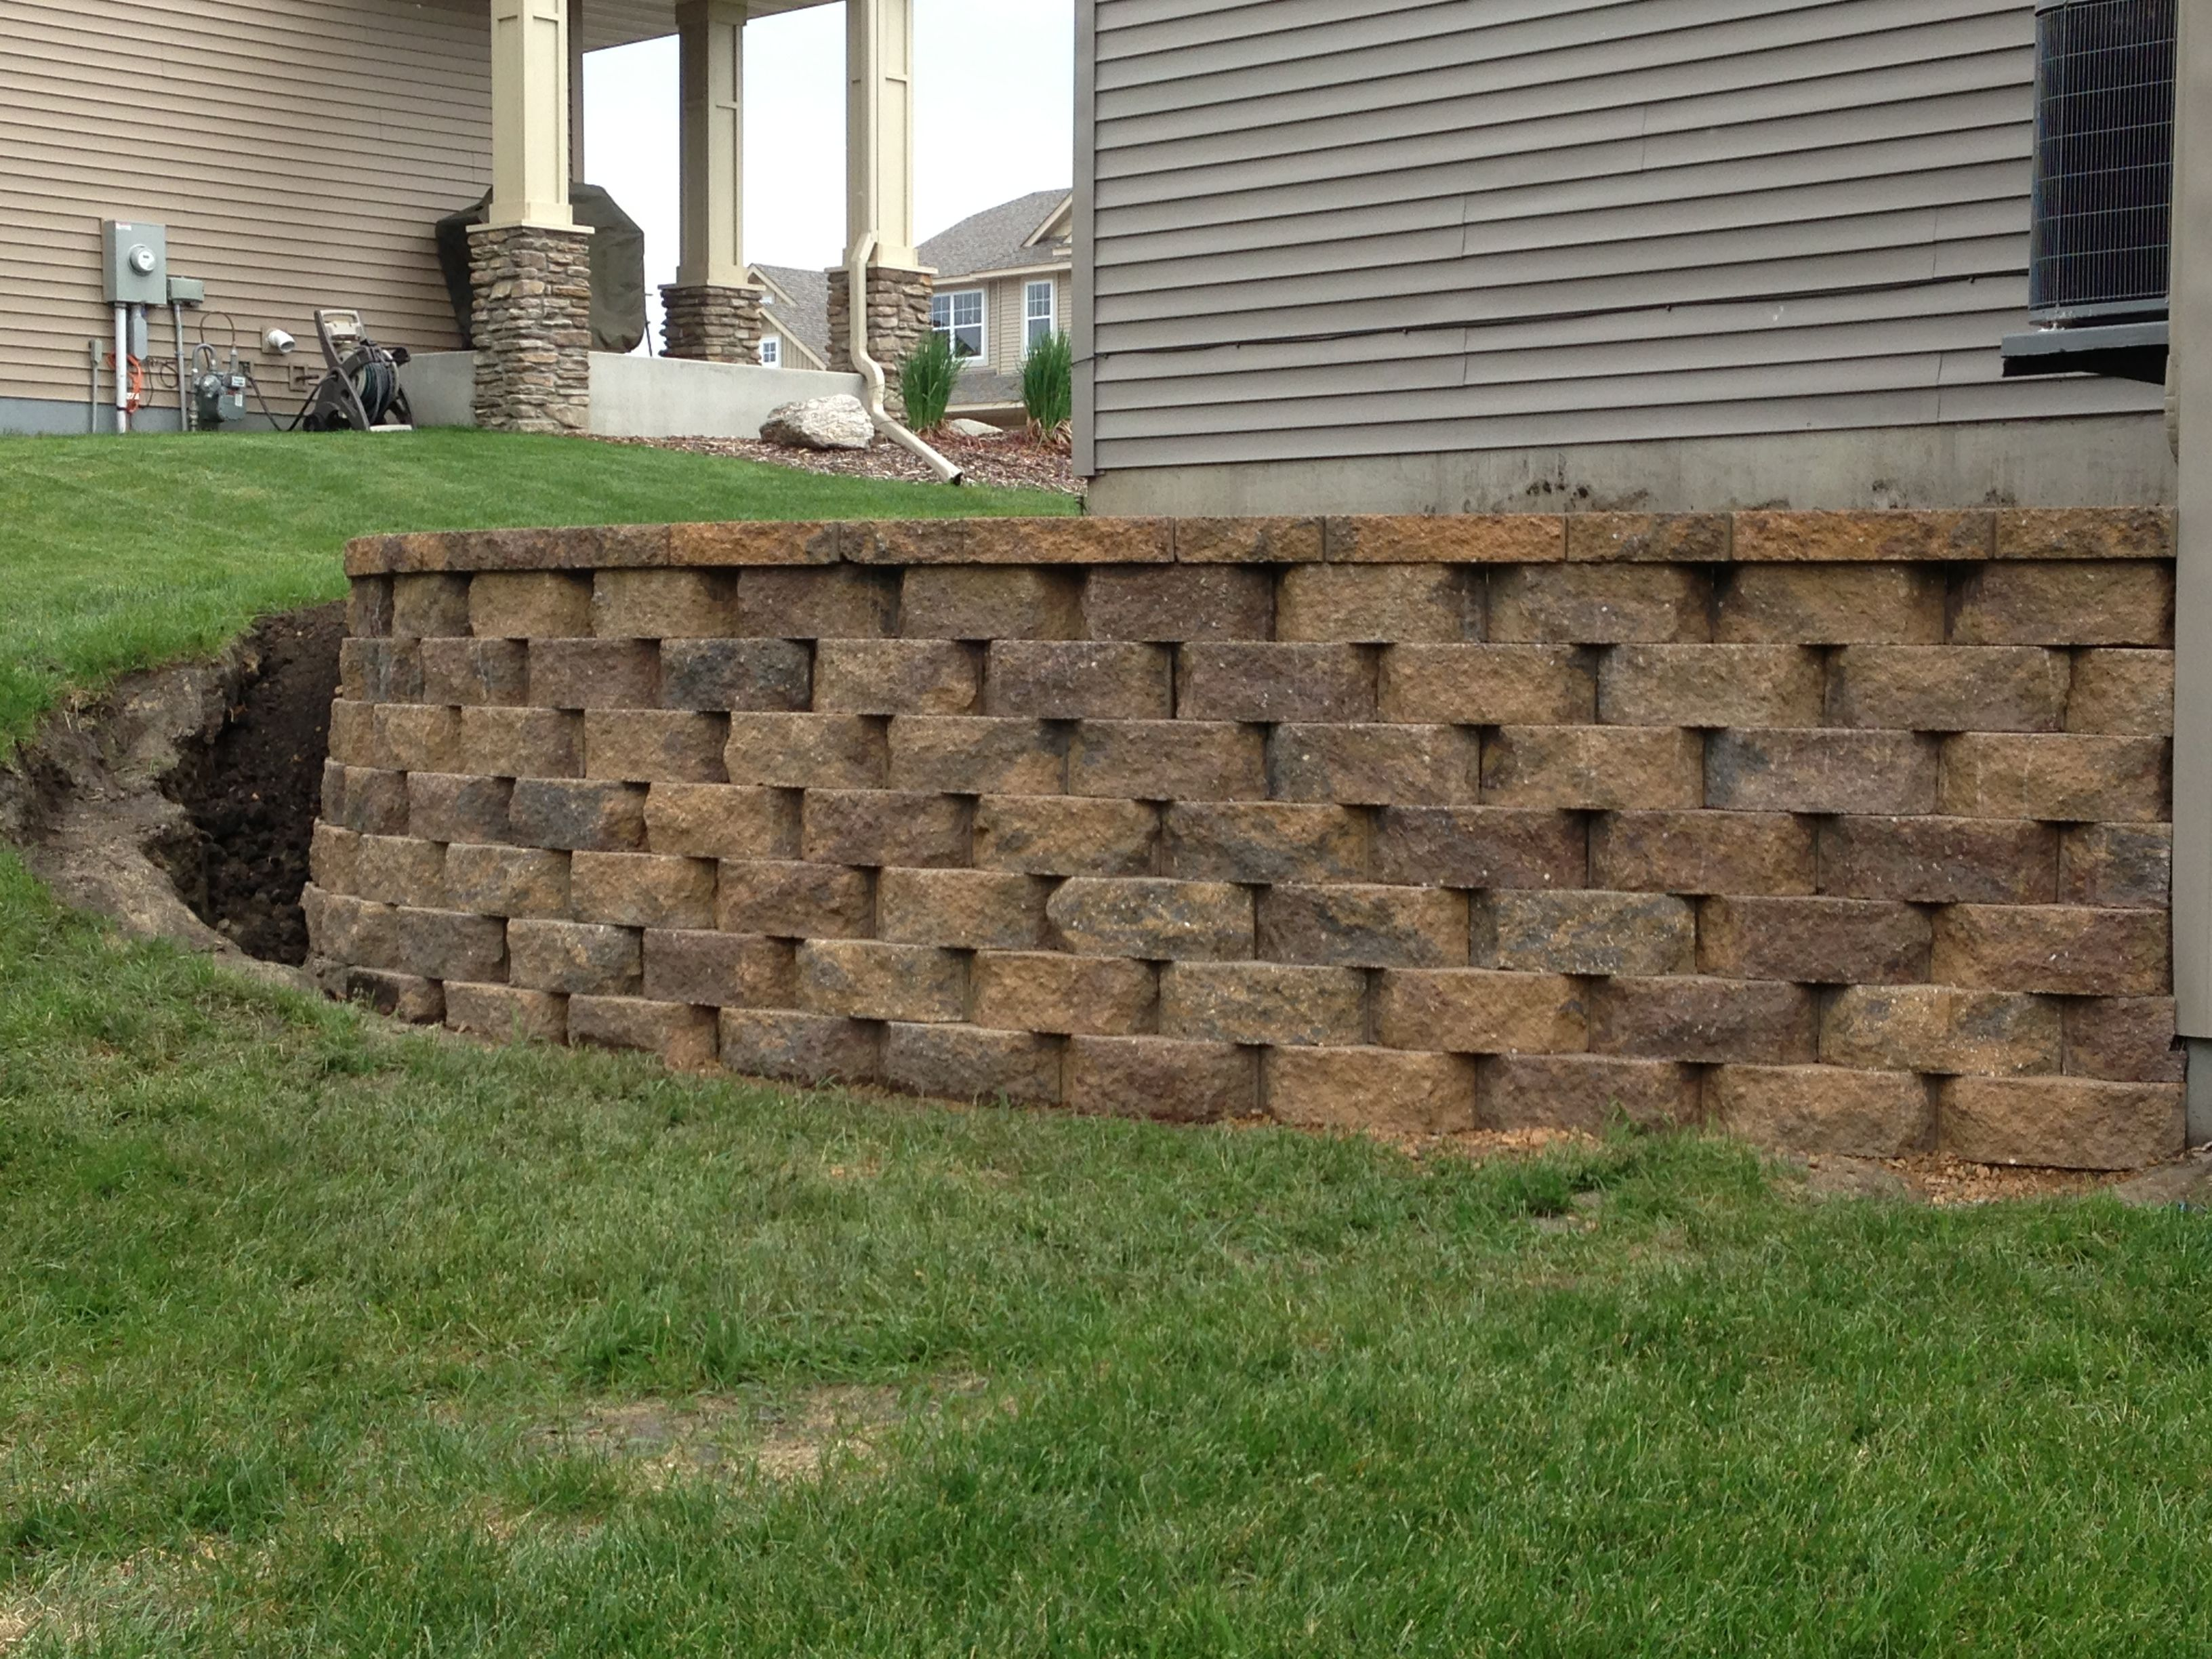 Pin By Ellen Wimer On Outdoor Stuff Landscaping Around House Retaining Wall Diy Retaining Wall